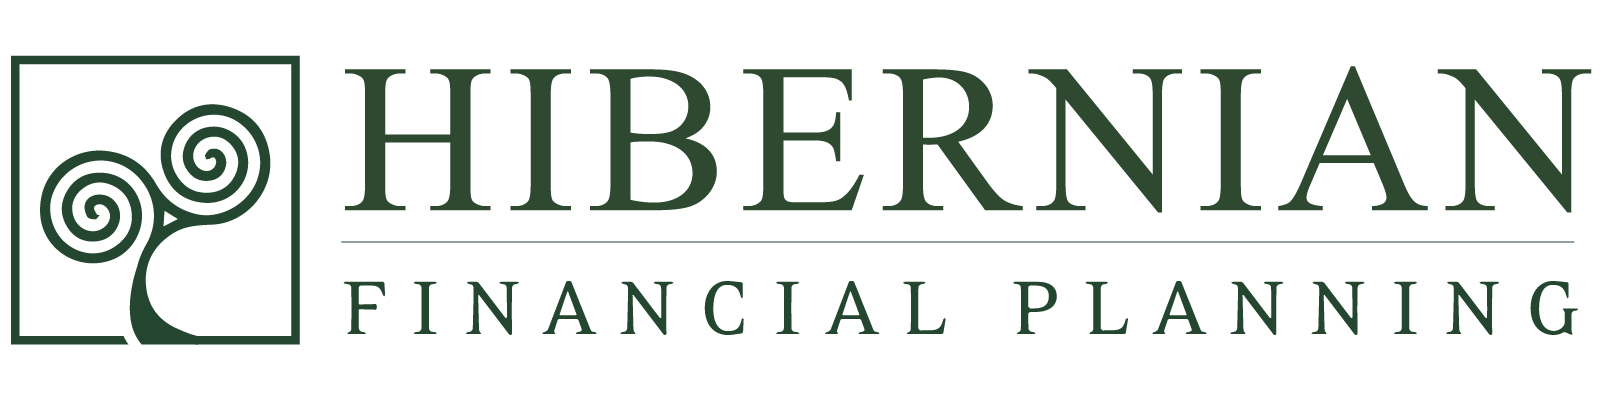 Hiberianfinanciallogo